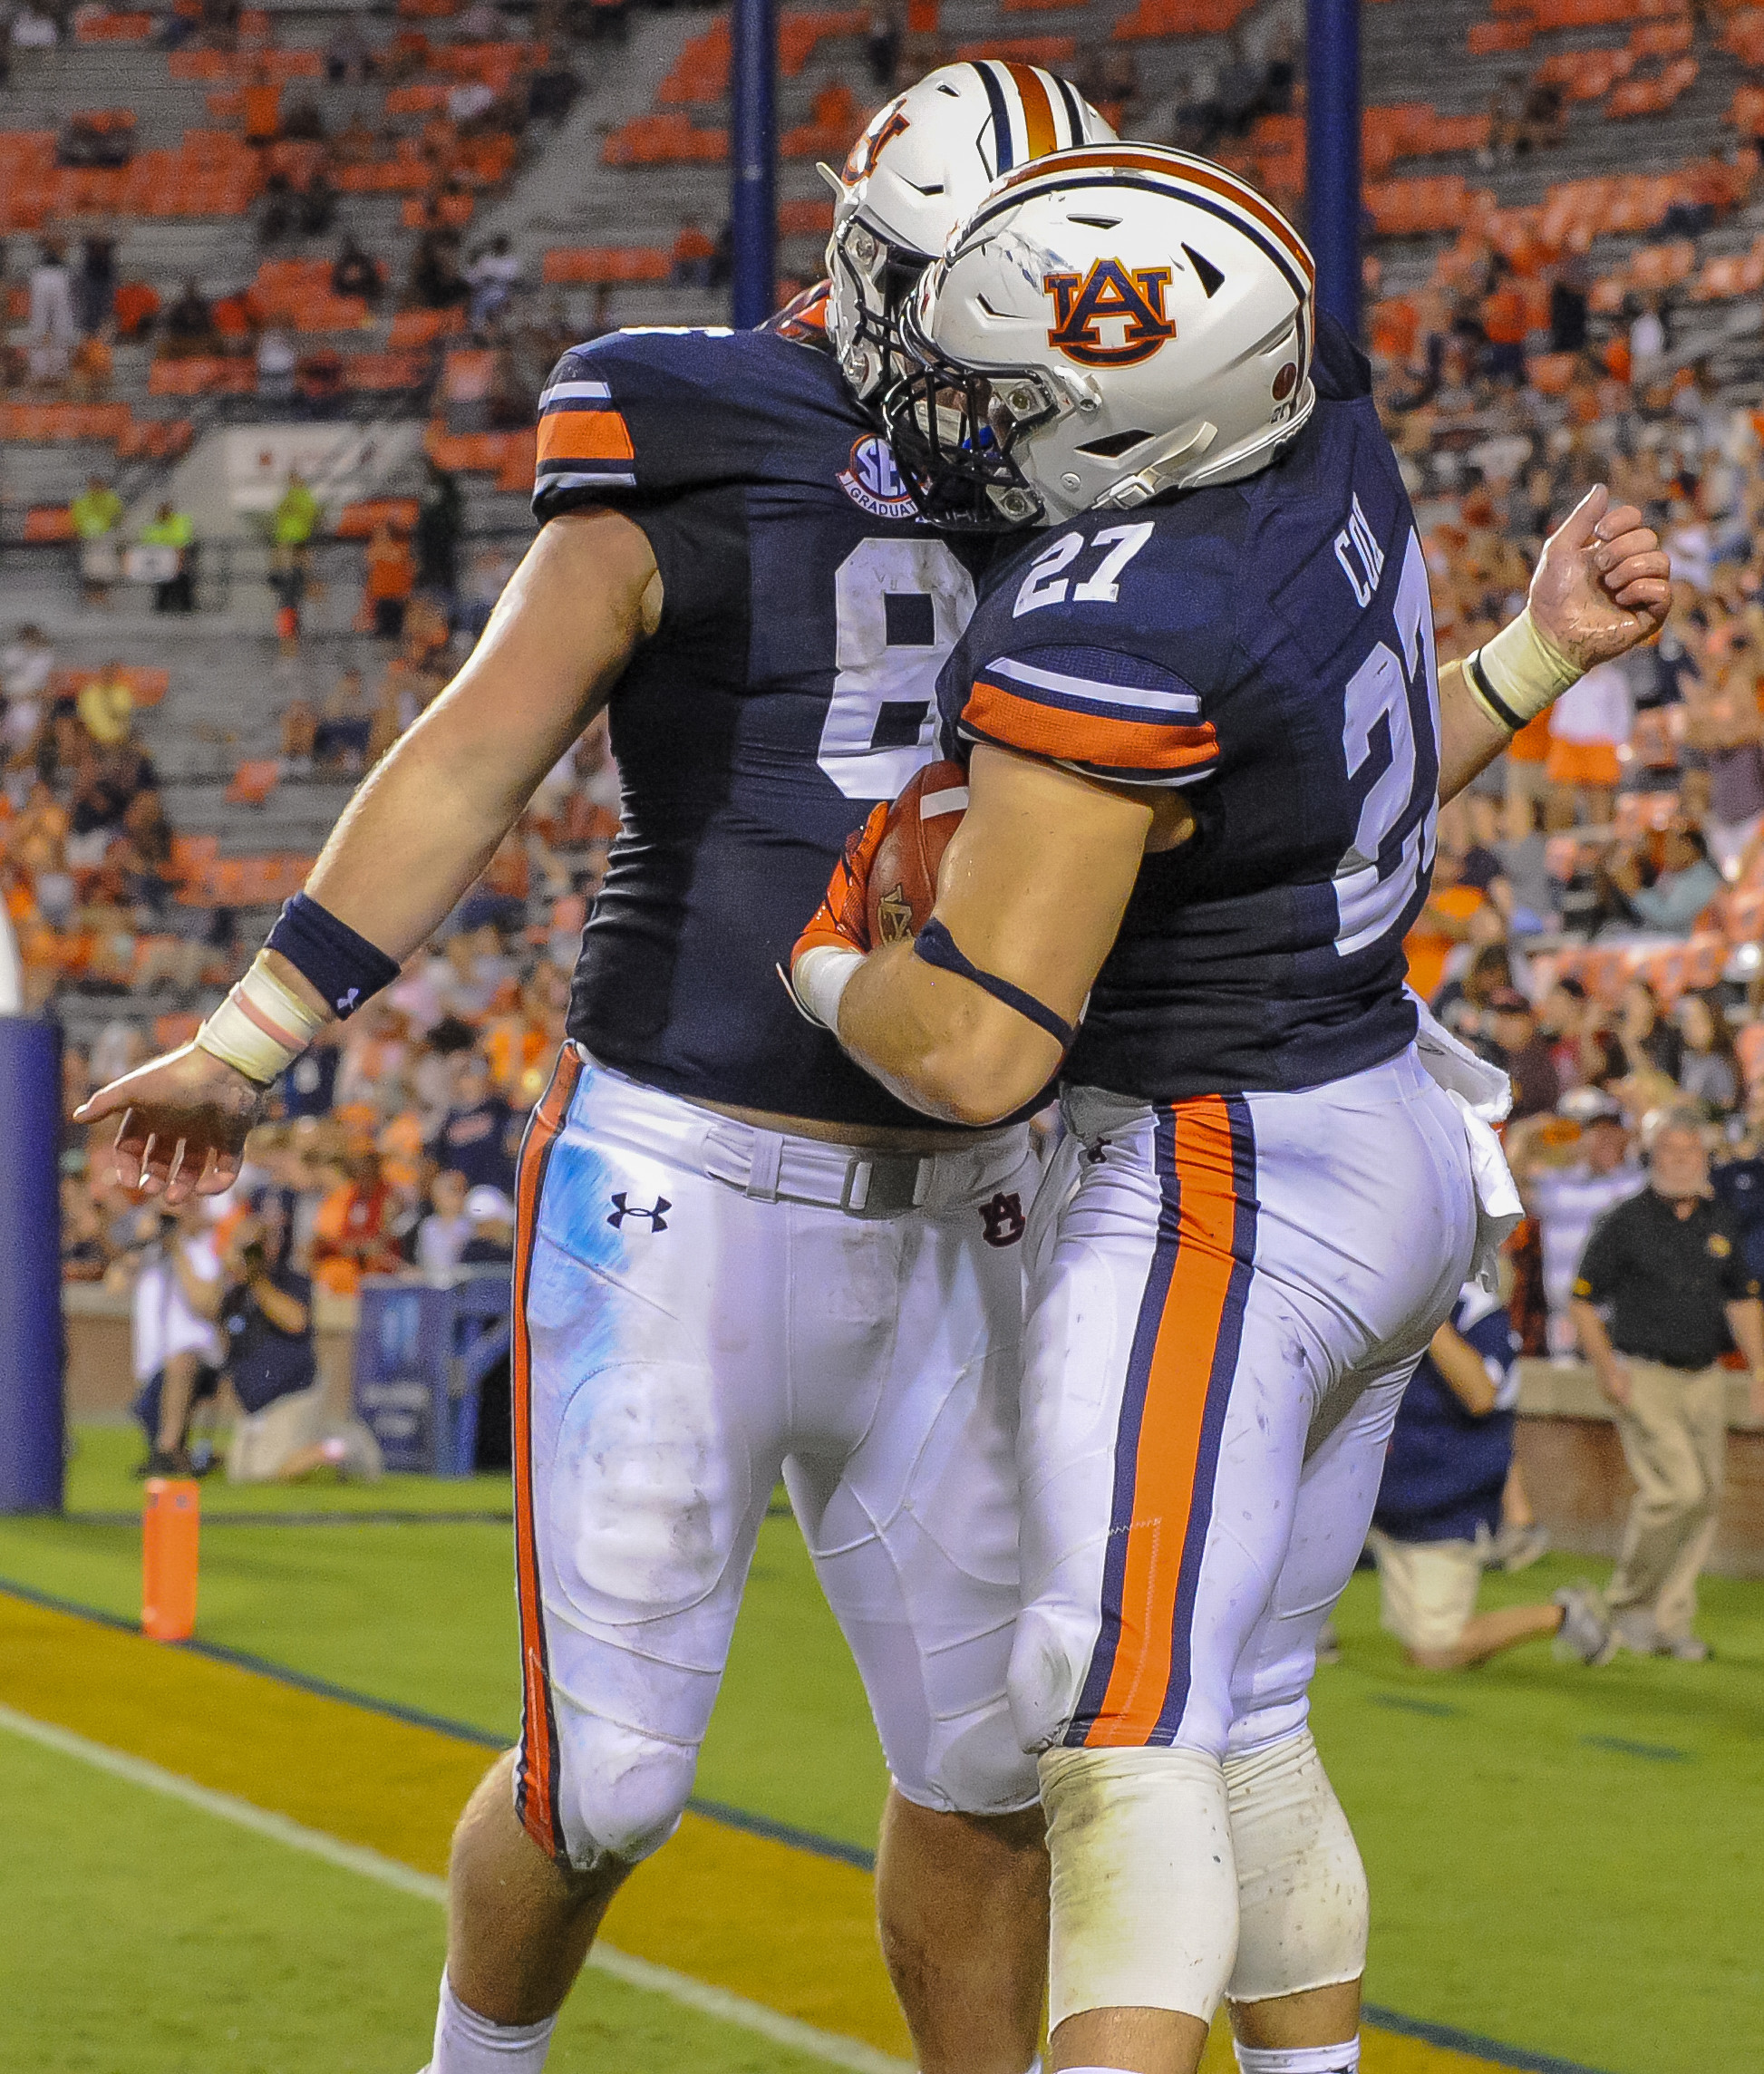 Auburn Tigers offensive lineman Tucker Brown (86) celebrates with fullback Chandler Cox  during the second half of Saturday's game, at Jordan Hare Stadium in Auburn AL. Daily Mountain Eagle -  Jeff Johnsey